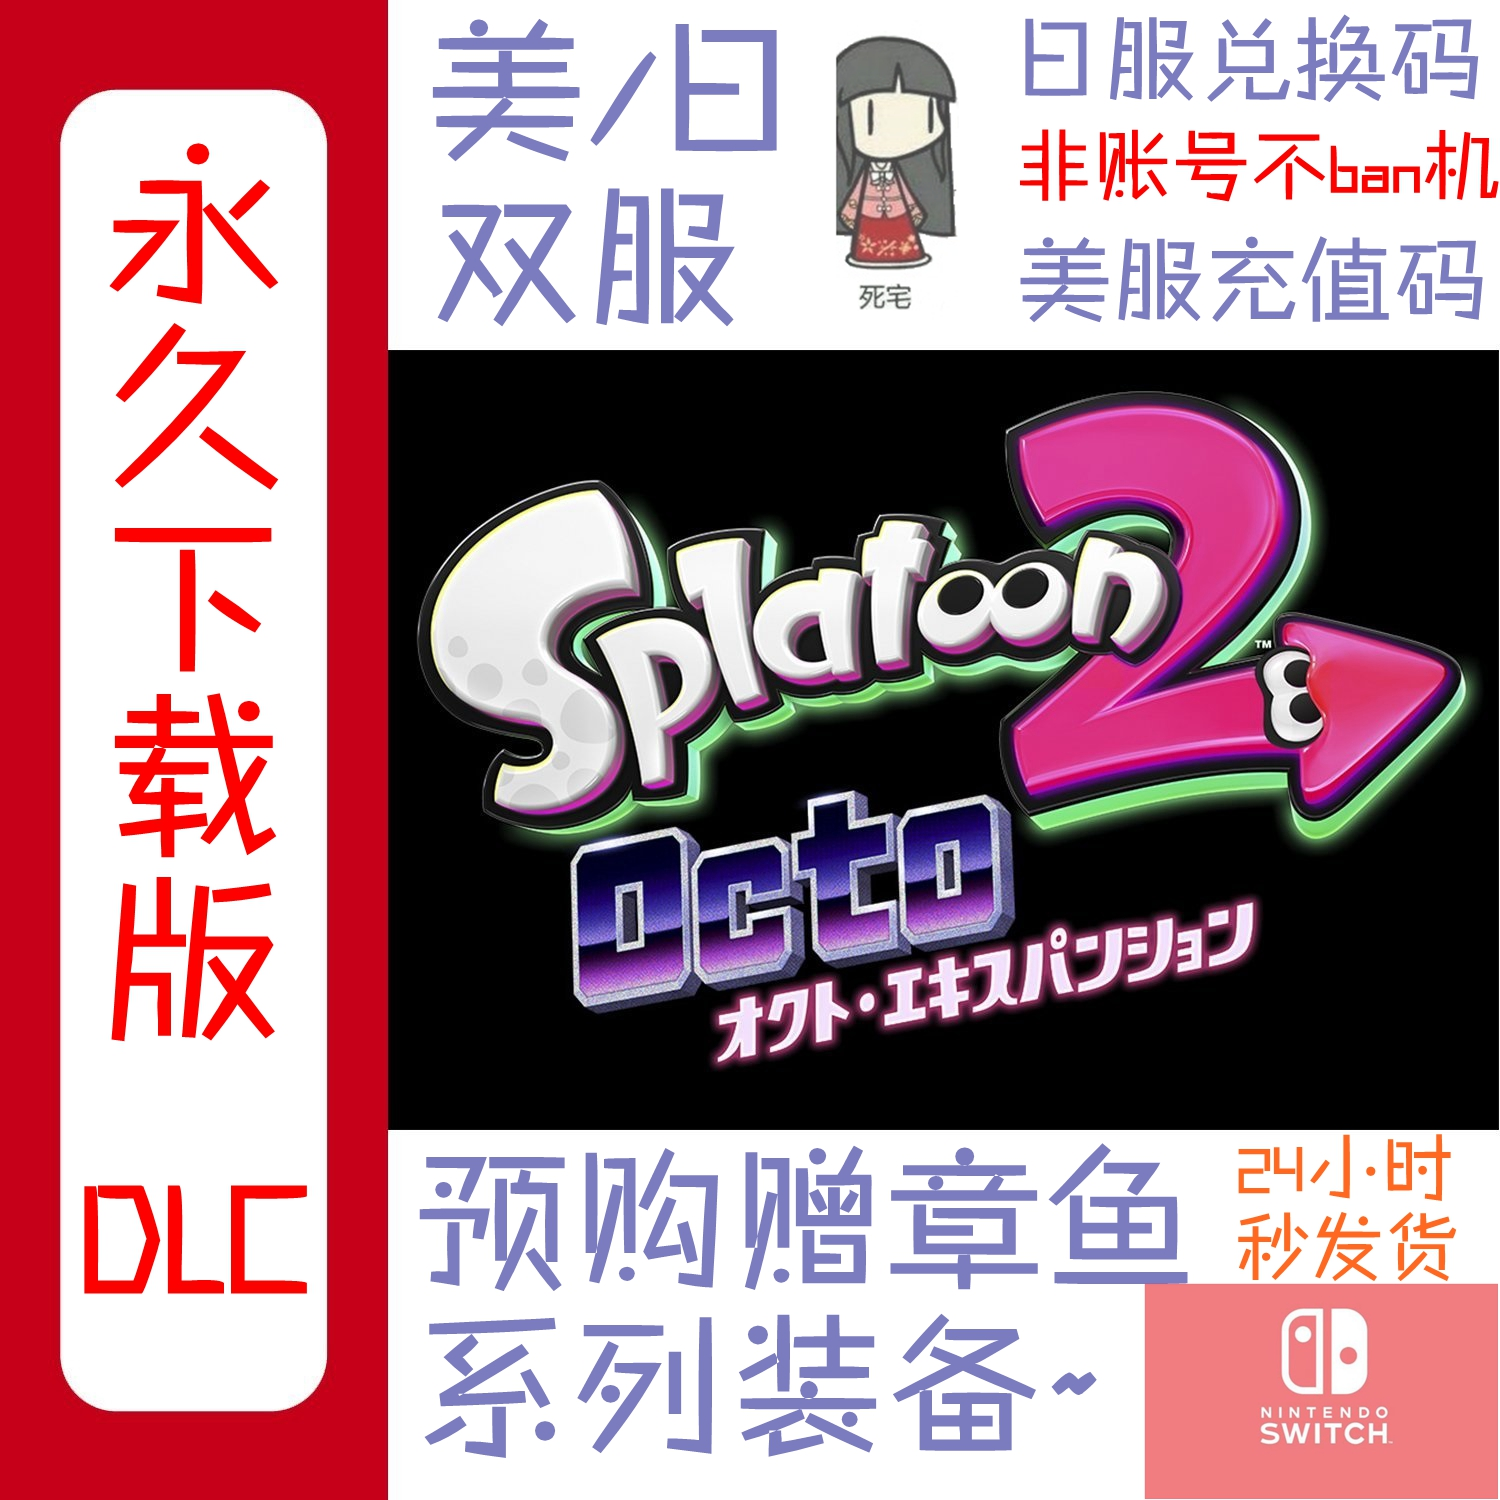 Nintendo switch NS splatoon2 Jet Fighter 2 squid mother 2 dlc download code